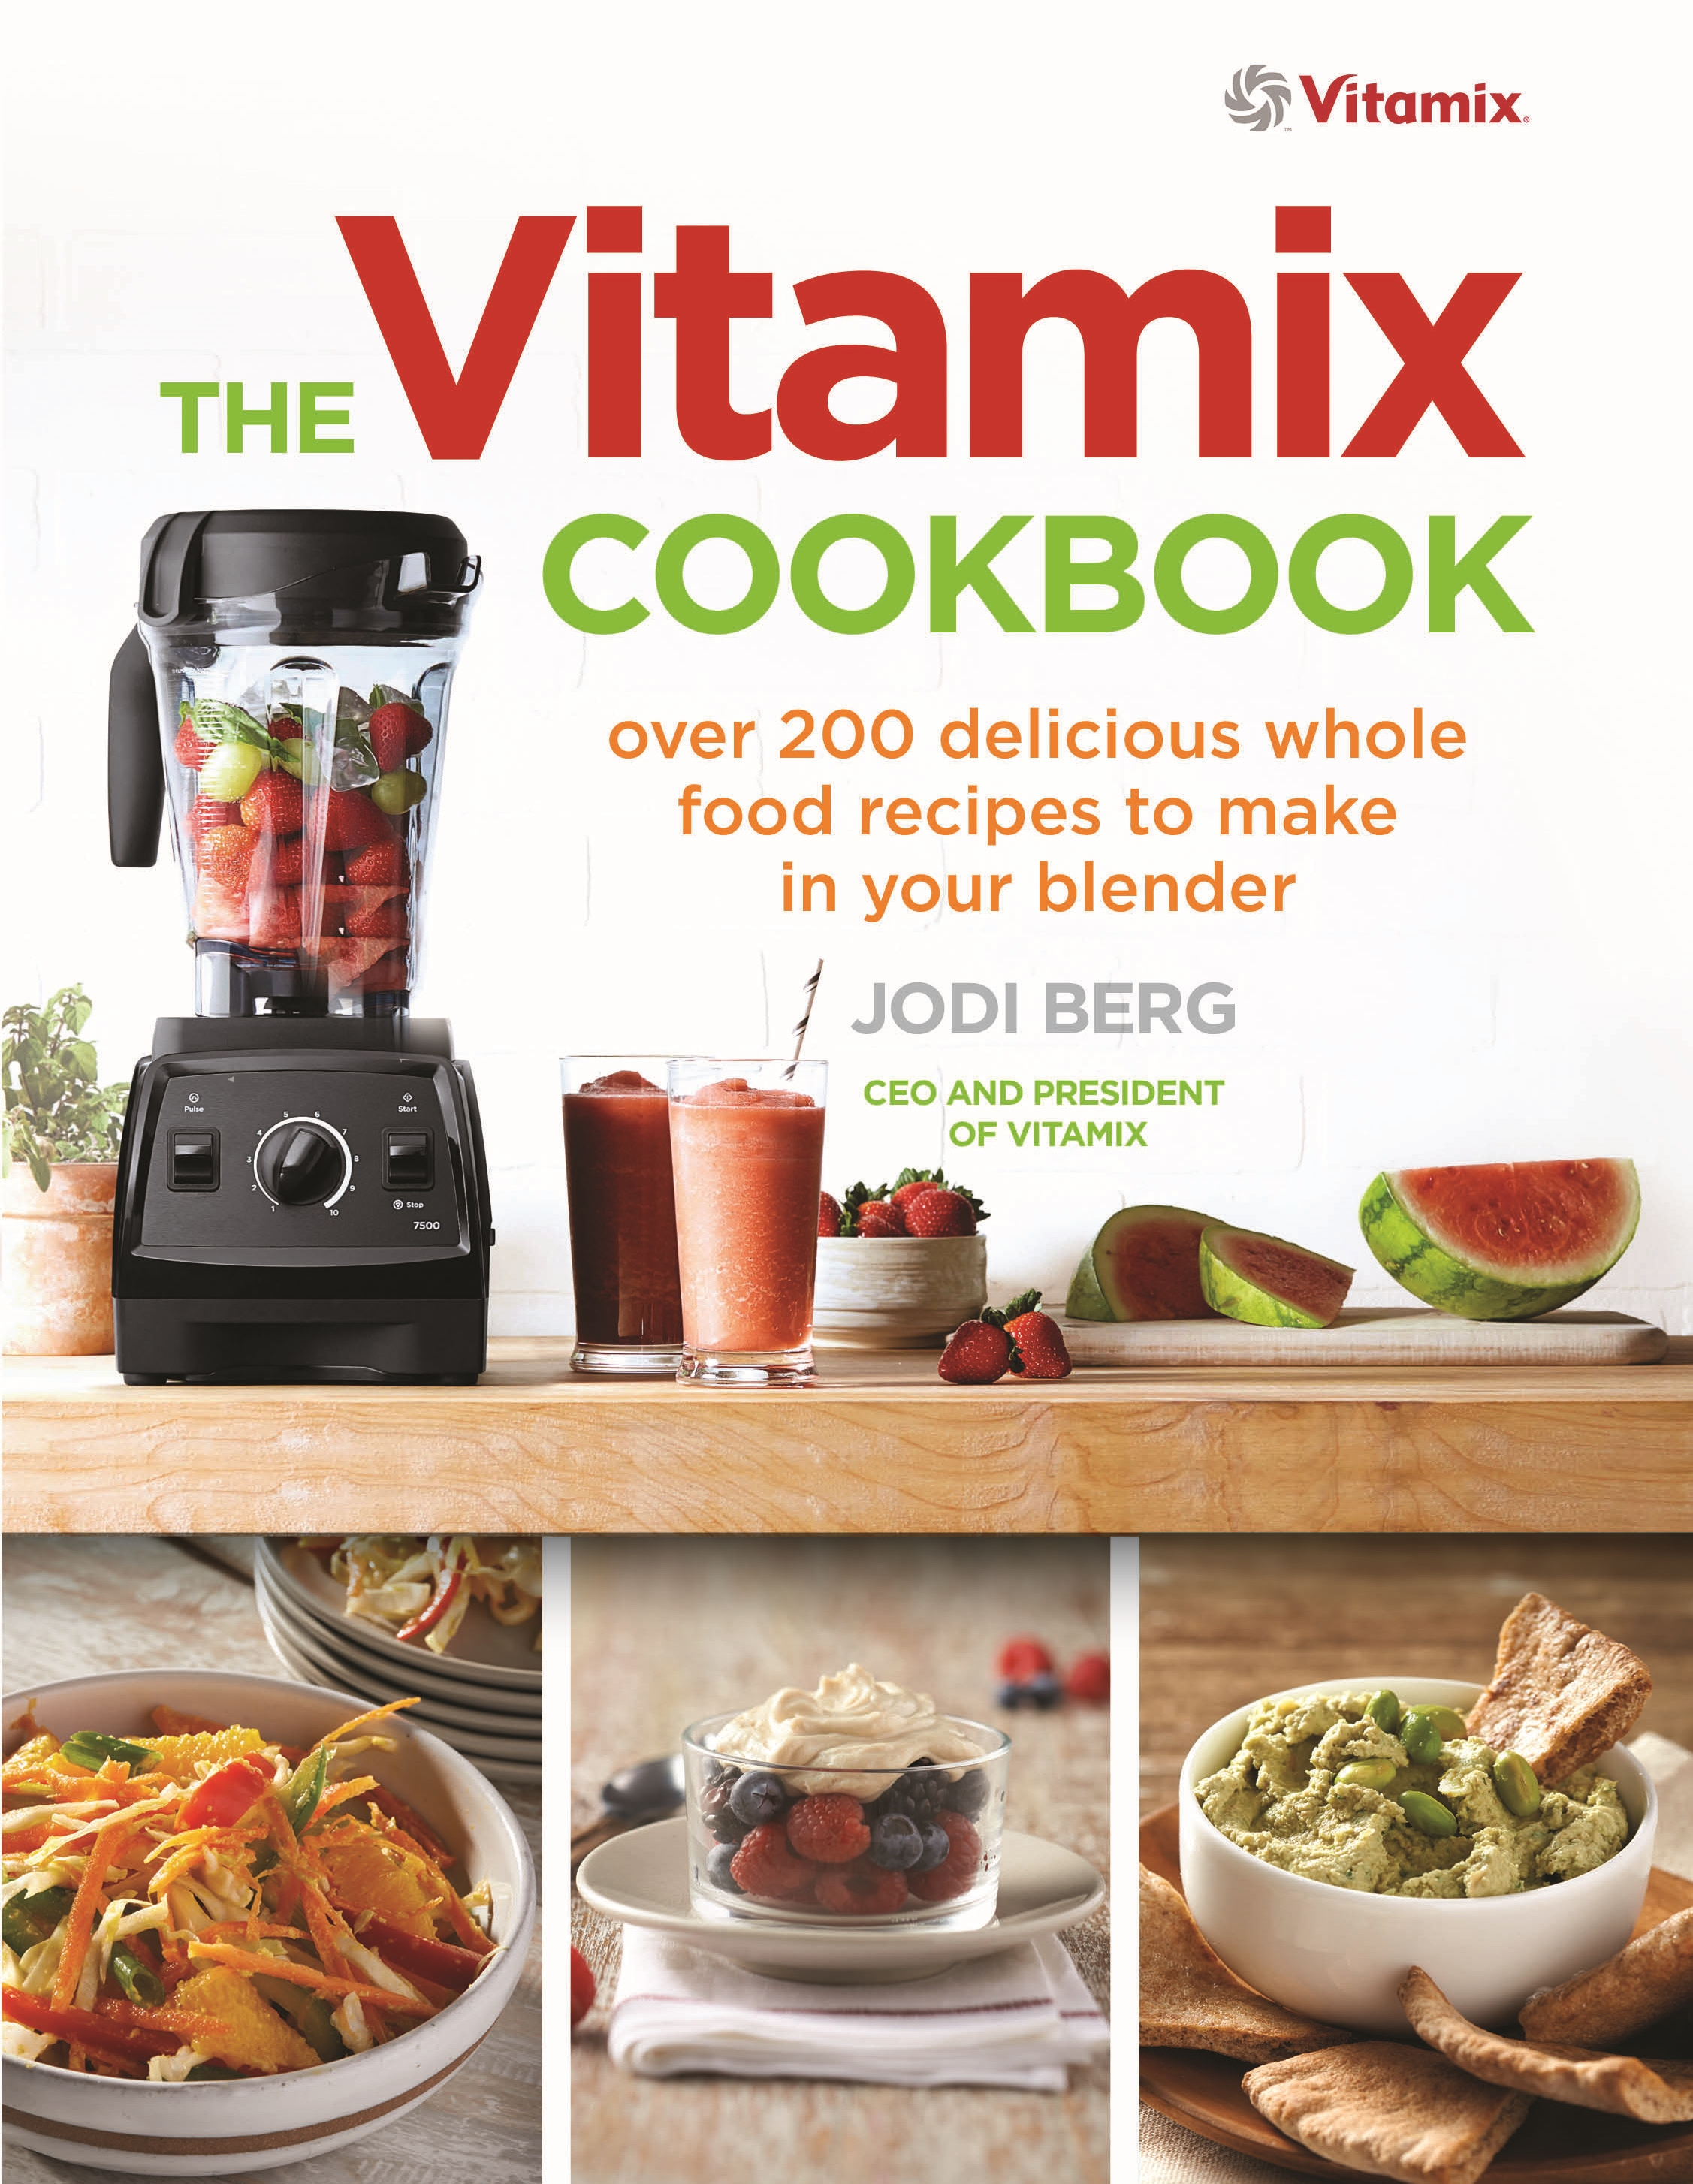 The vitamix cookbook by jodi berg penguin books new zealand the vitamix cookbook over 200 delicious whole food forumfinder Image collections